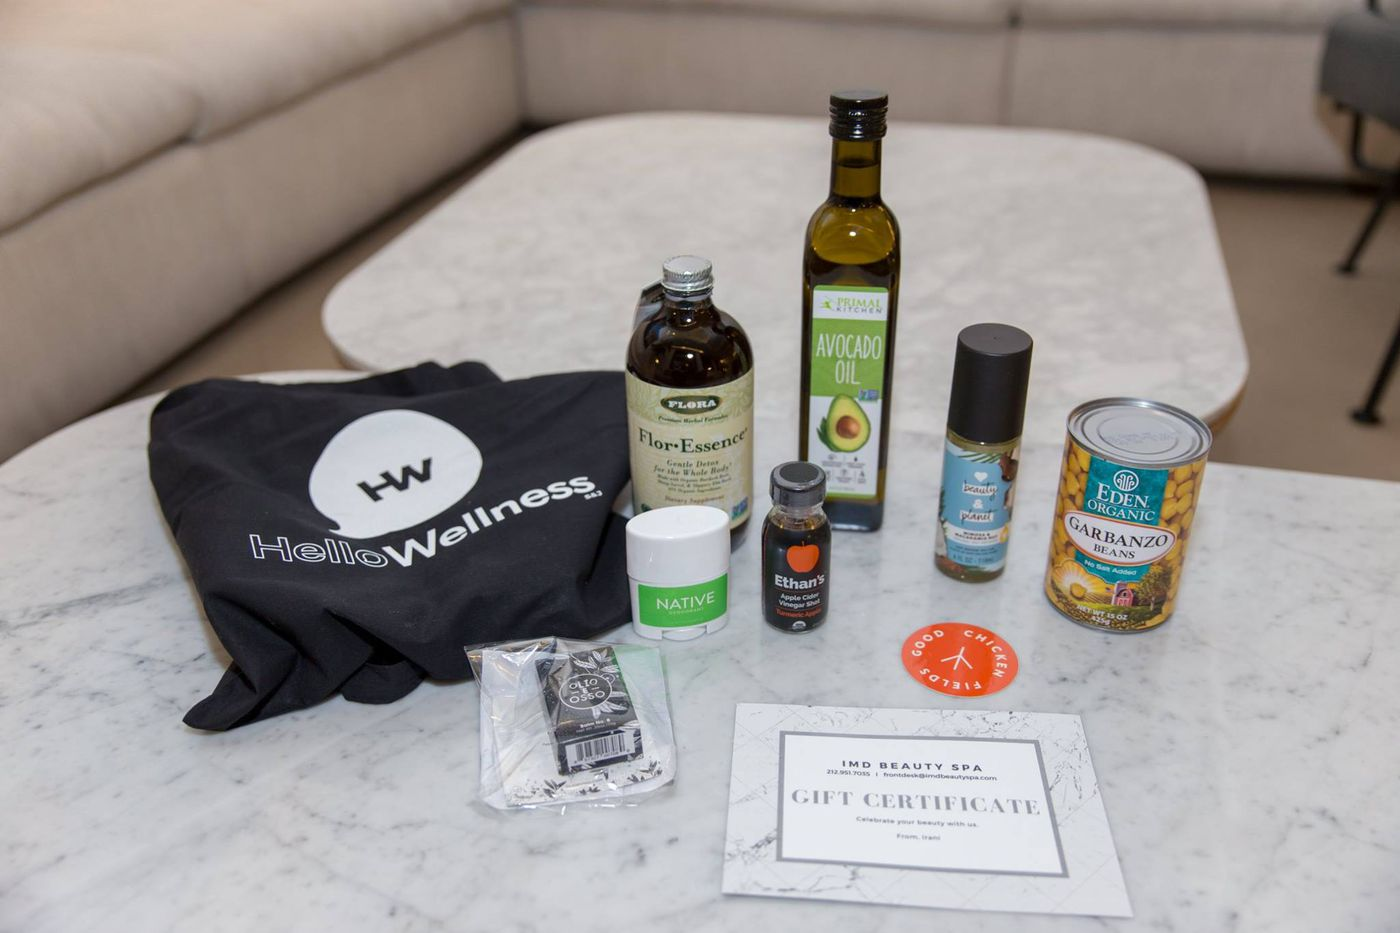 This event's swag-bag included this layout of items. || Photo Credit to sayhellowellness.com